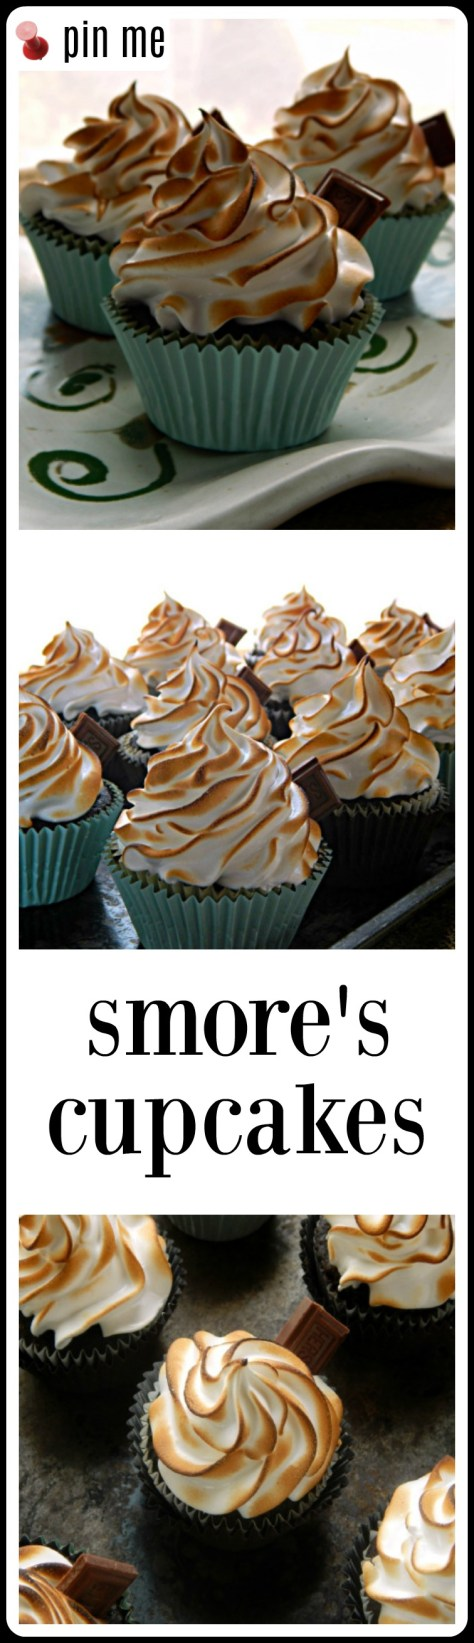 Smore's Cupcakes have a Toasted Swiss Meringue Topping, a Truffle filling and a chocolate & graham cracker crust. Finish with a piece of a Hershey's Bar.